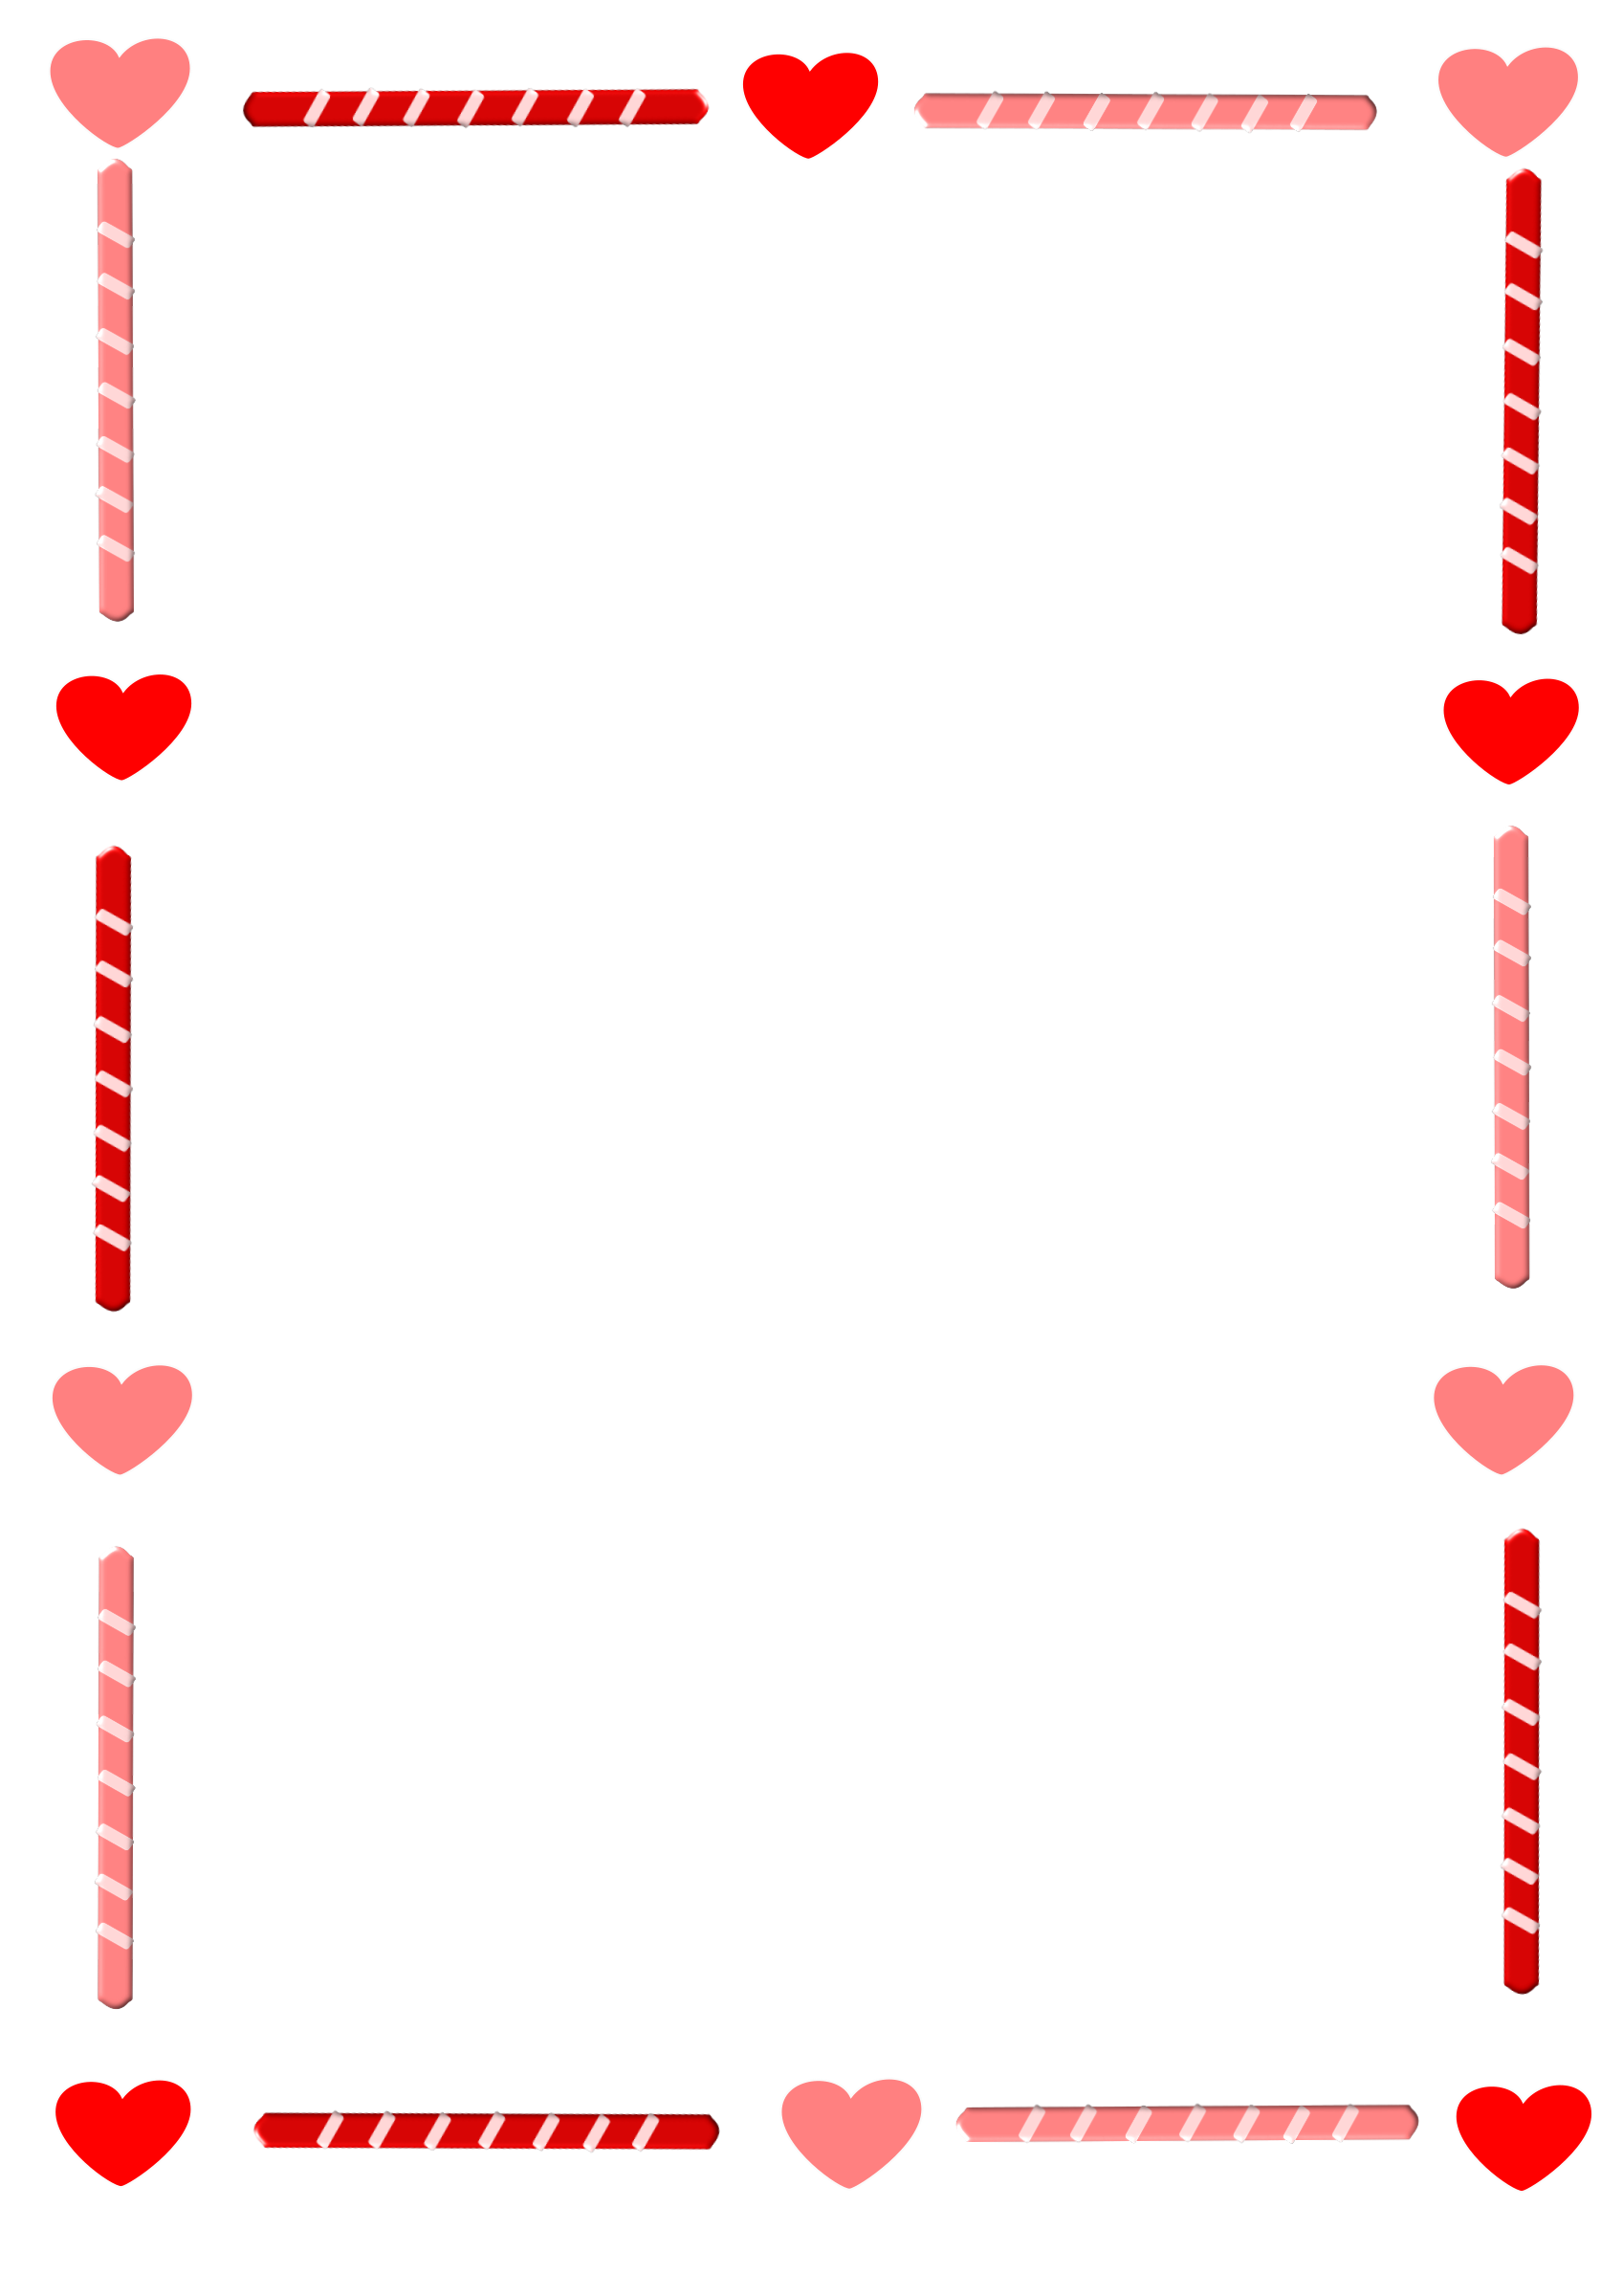 Heart border clipart banner royalty free Heart Border Clipart Transparent | Letters Format banner royalty free